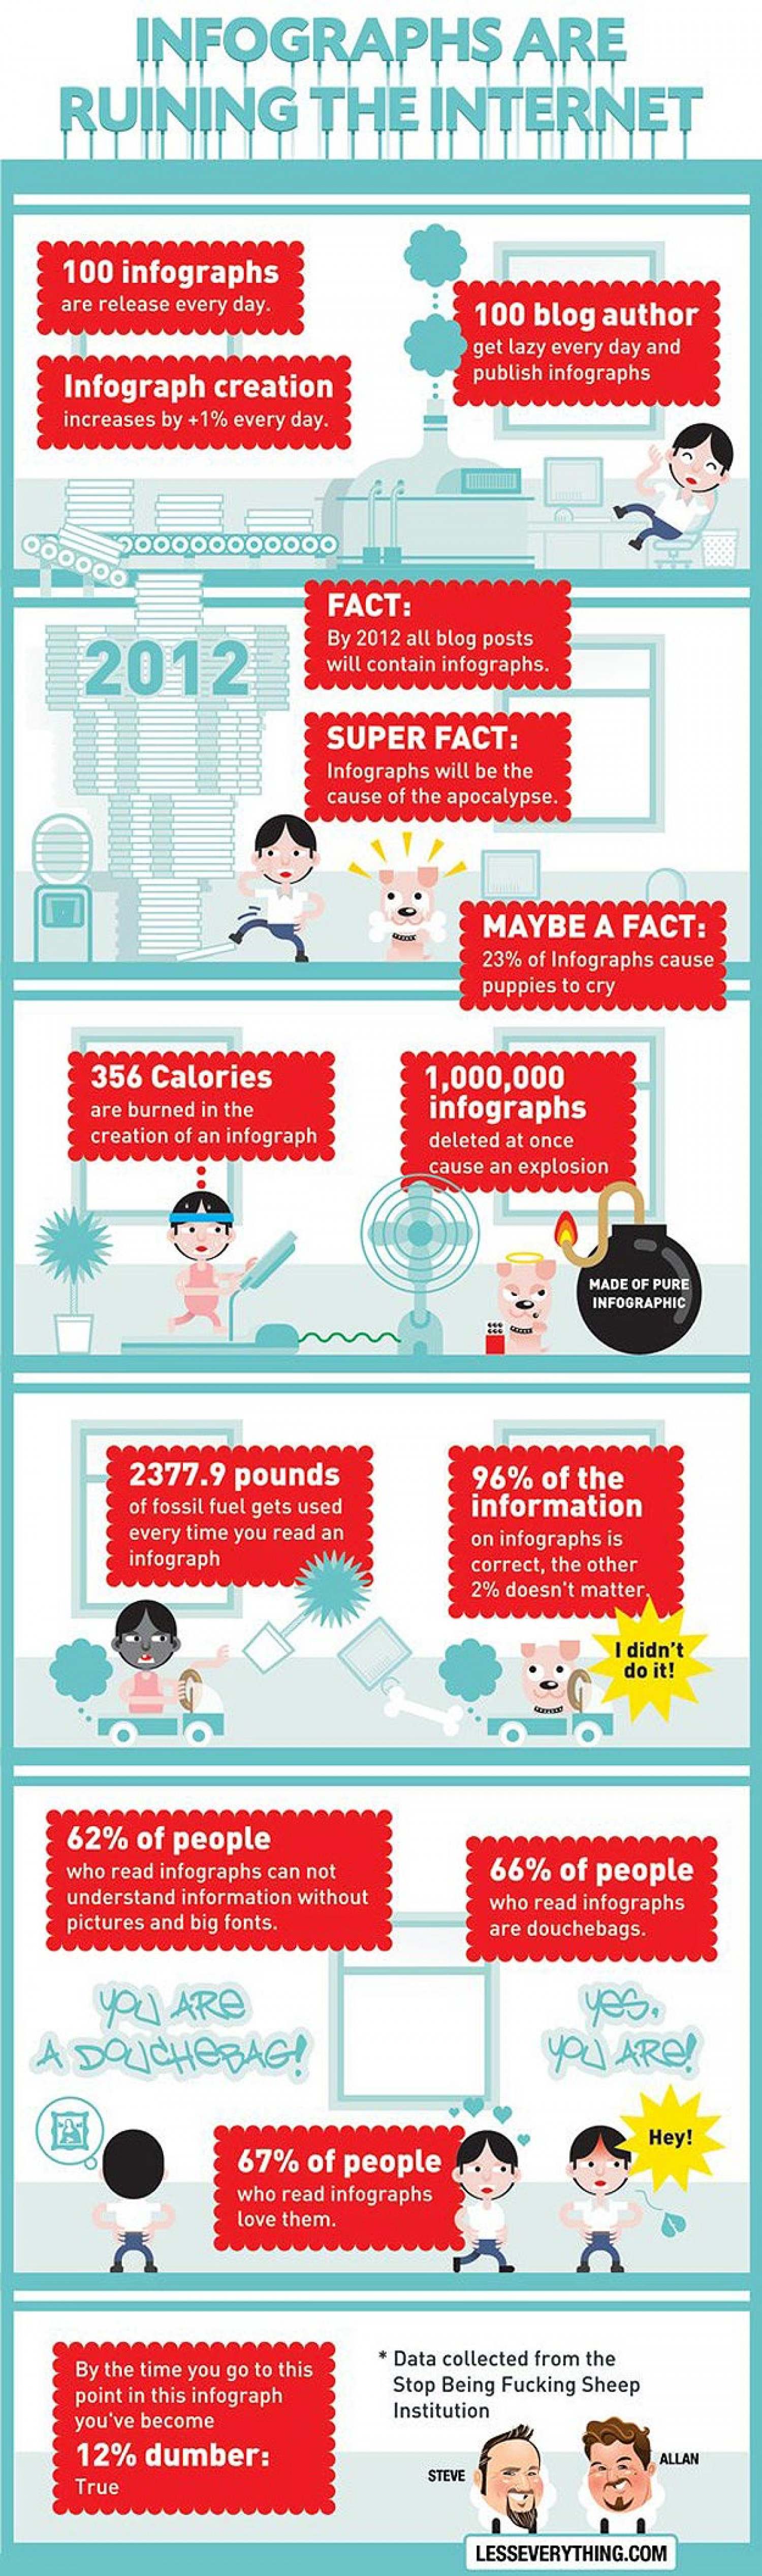 "Funny ""Facts"" about Infographics Infographic"